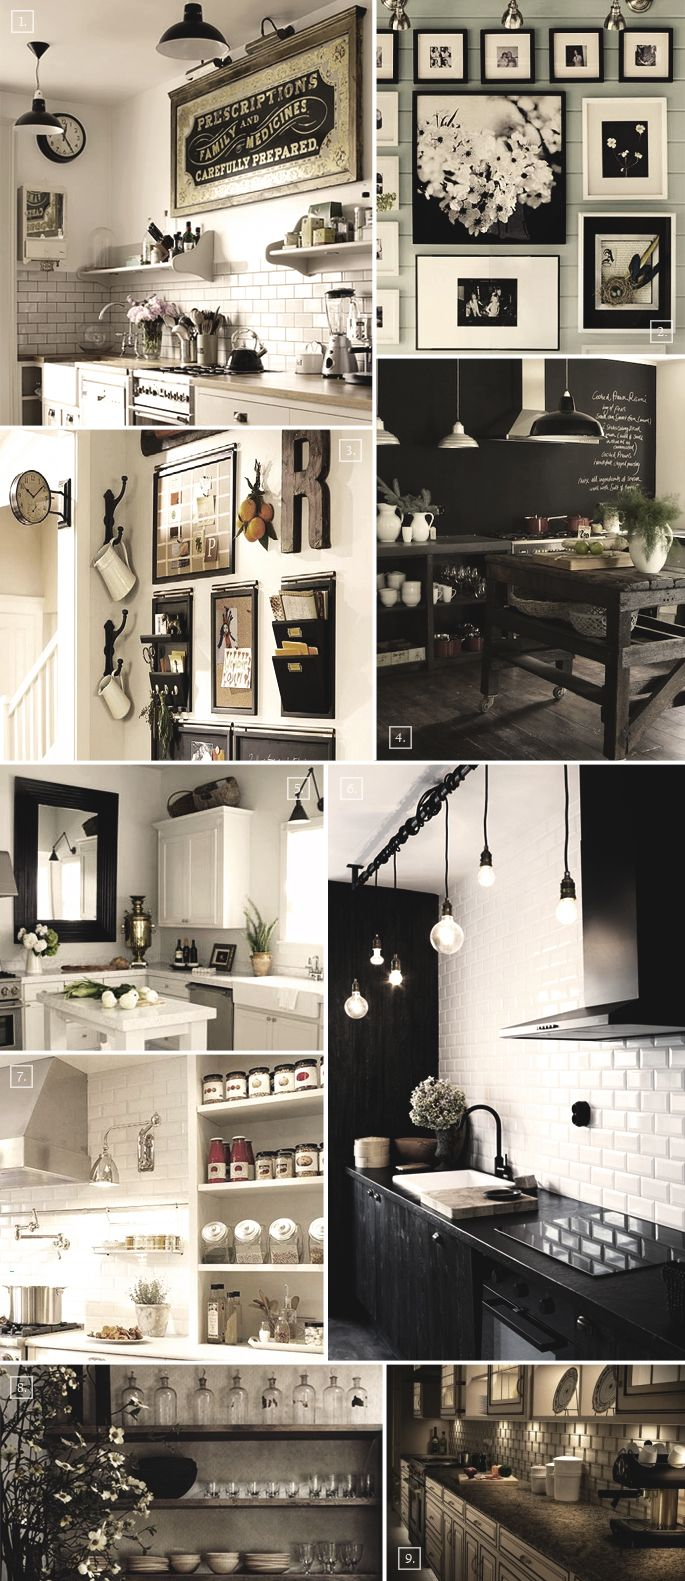 Beautiful wall decor ideas for a kitchen wall decor kitchens and